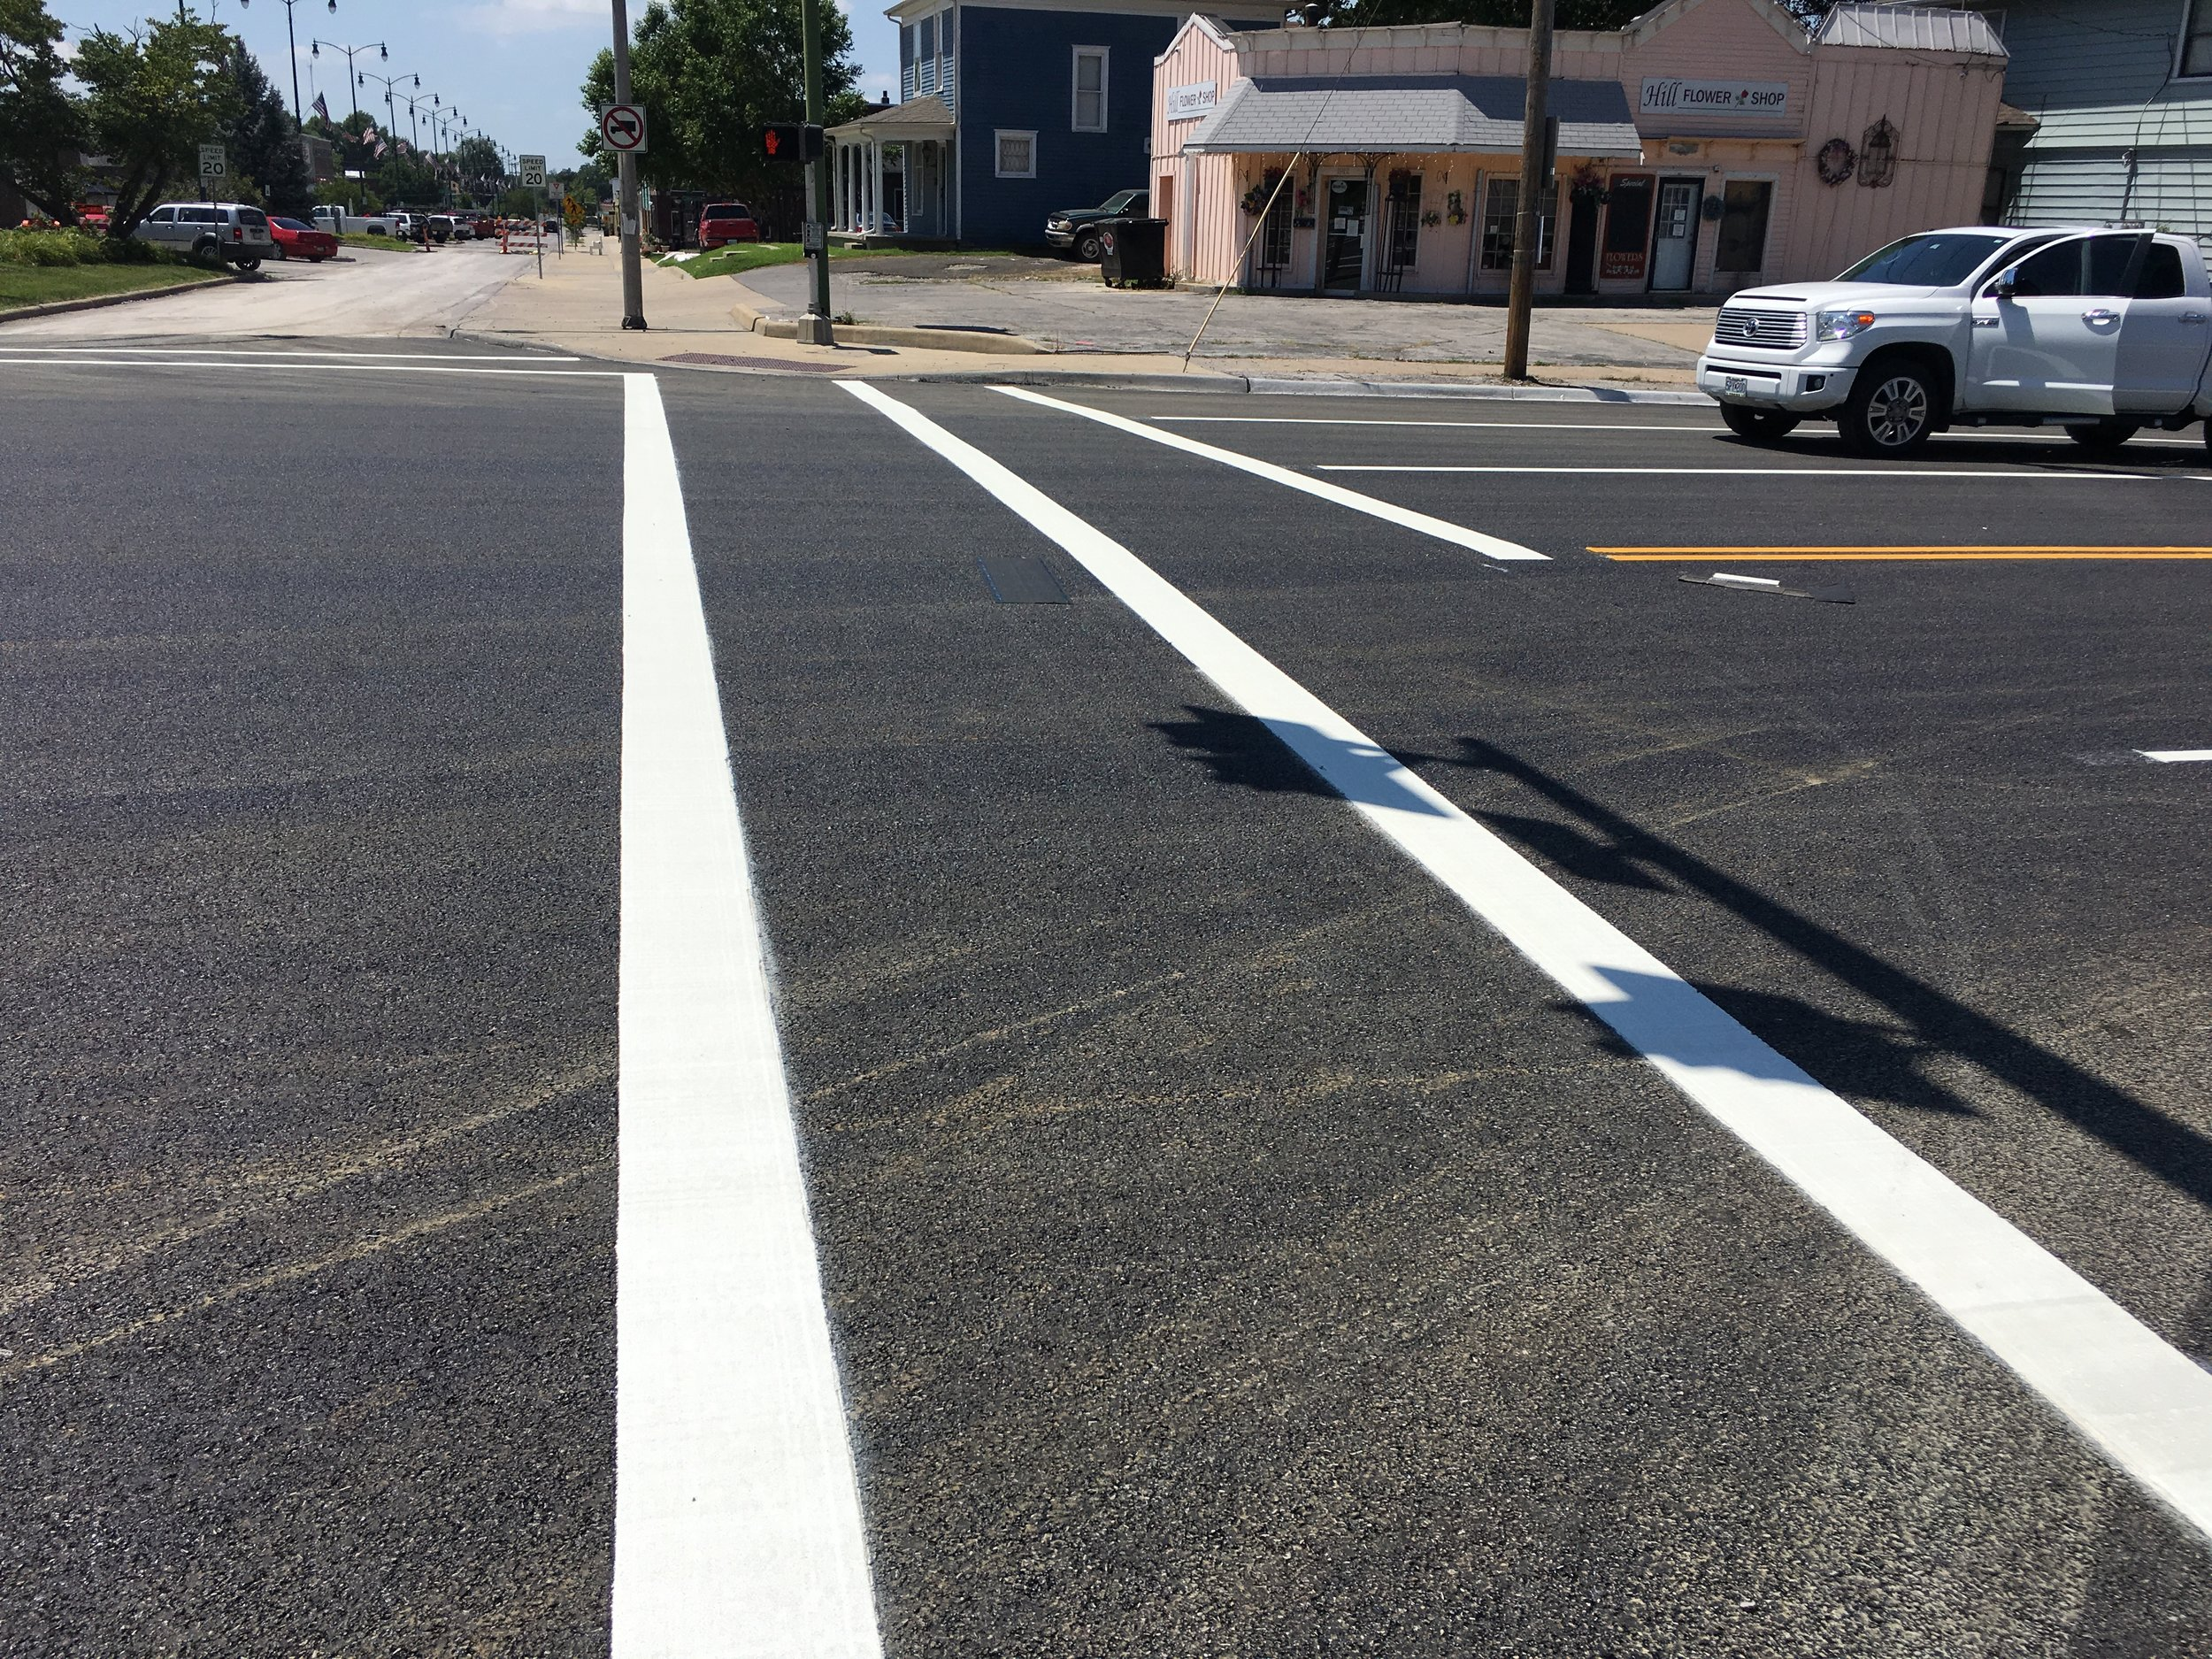 roadway-striping-and-markings.jpg